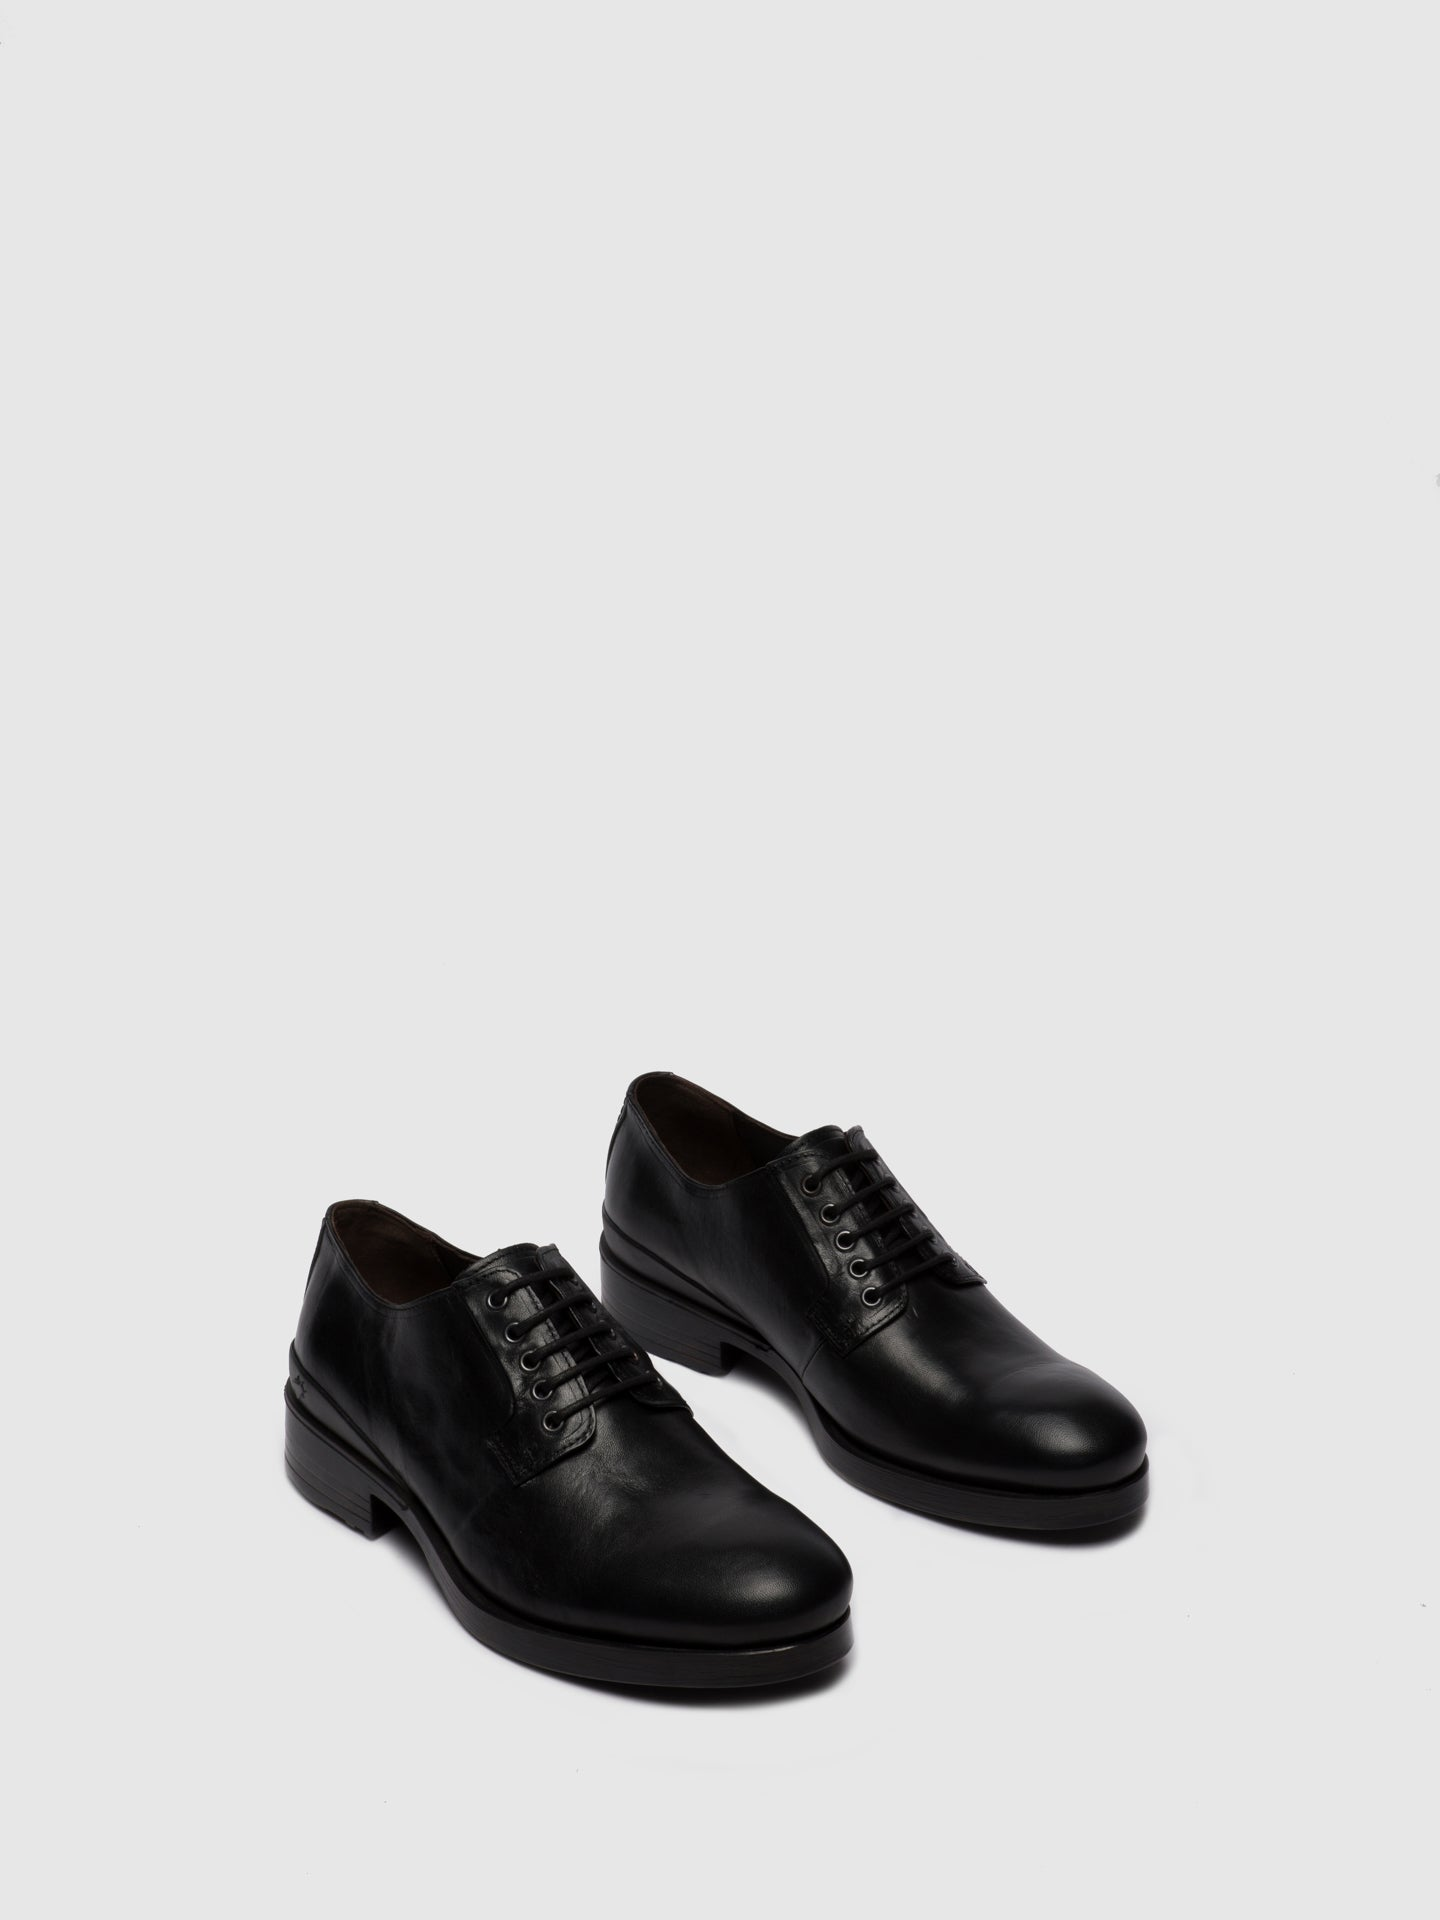 Fly London Lace-up Shoes MICK649FLY ESTIGMA(VEGETAL) BLACK